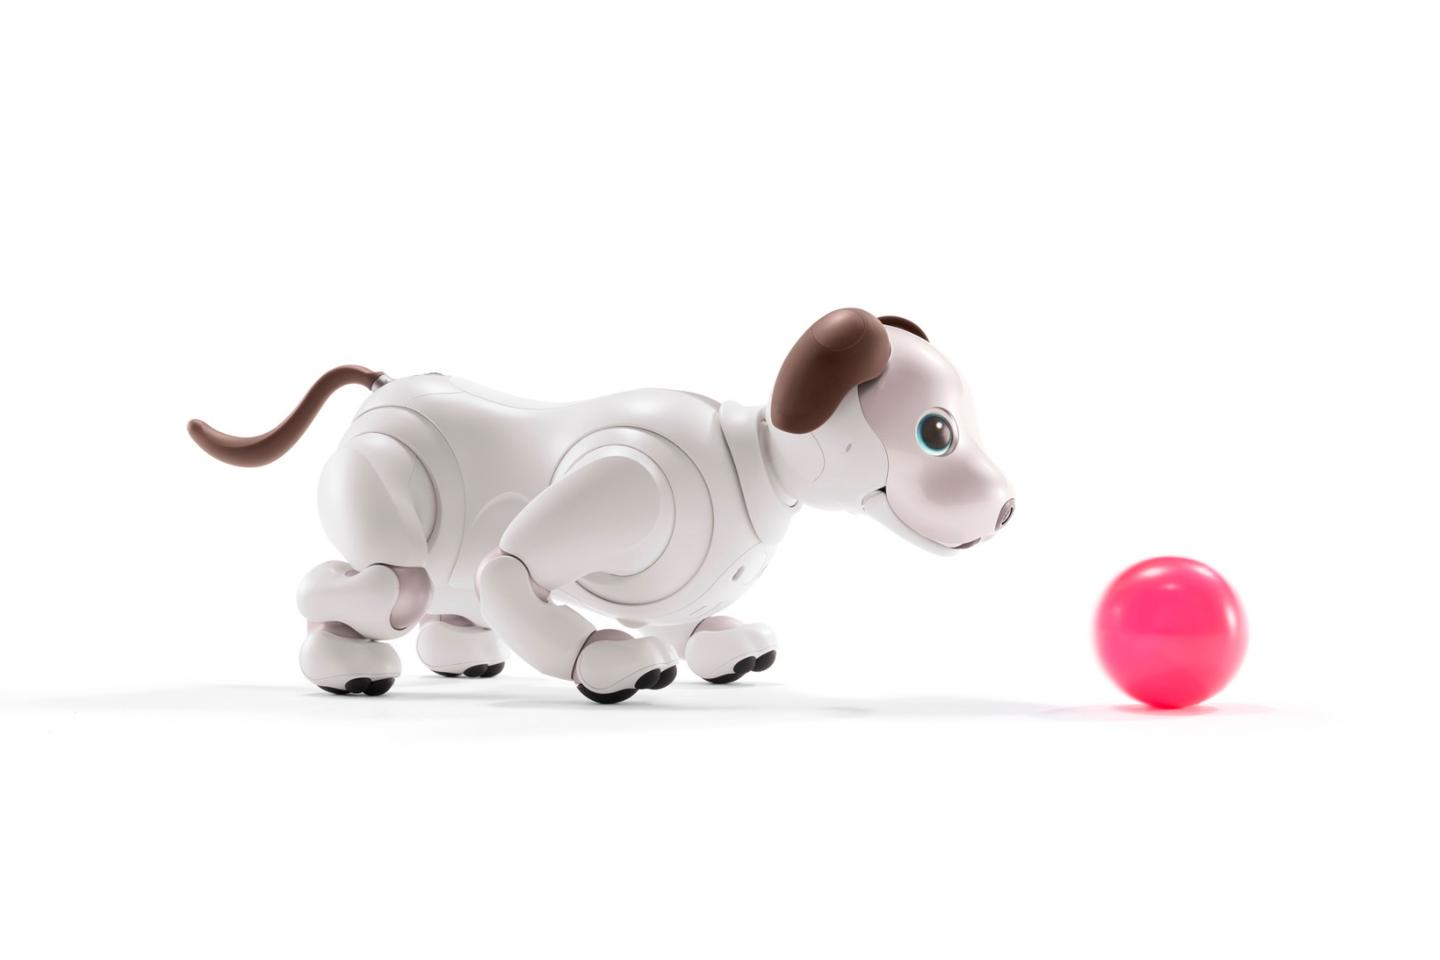 Sony's adorable robotic dog confirmed for US availability